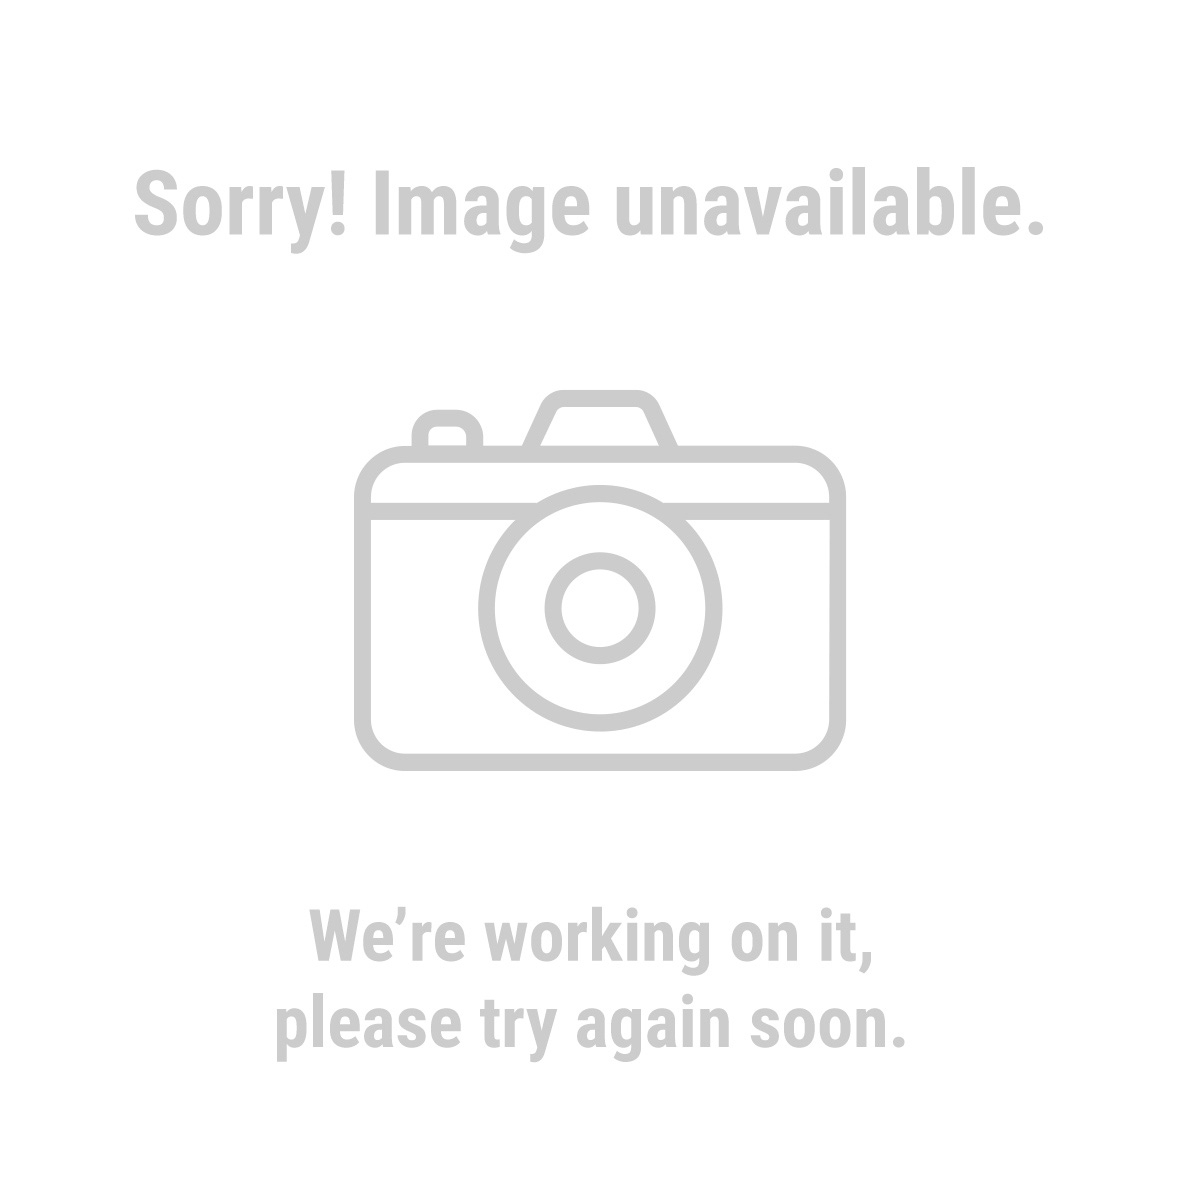 Drill Master 93078 Pack of 10 High Speed Steel Titanium Nitride Drill Bits